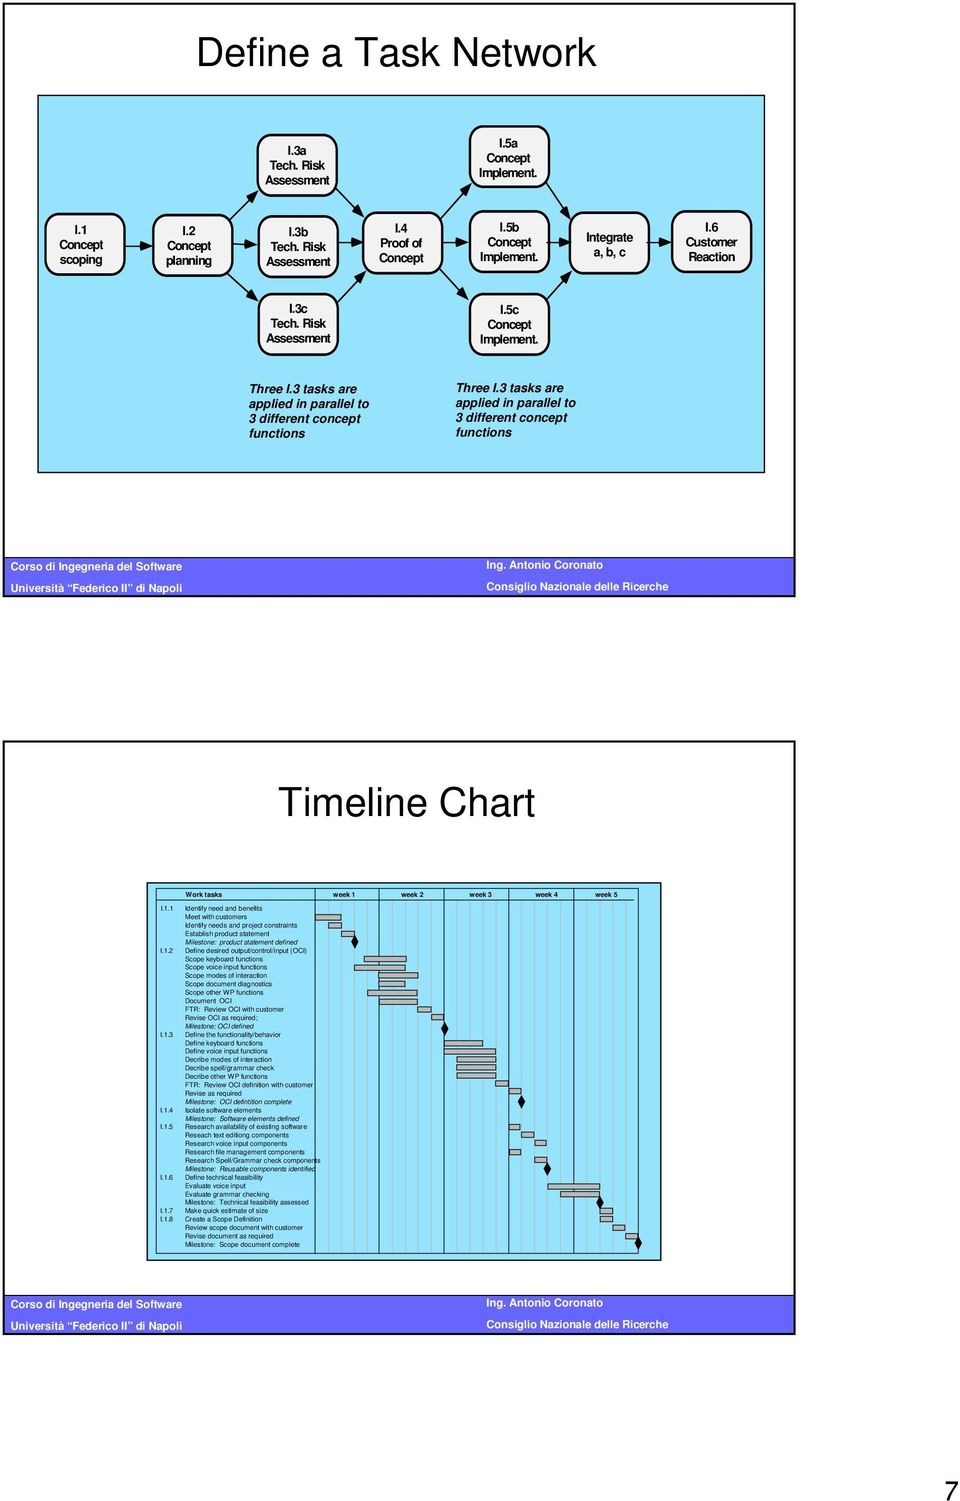 3 tasks are applied in parallel to 3 different concept functions Timeline Chart week 1